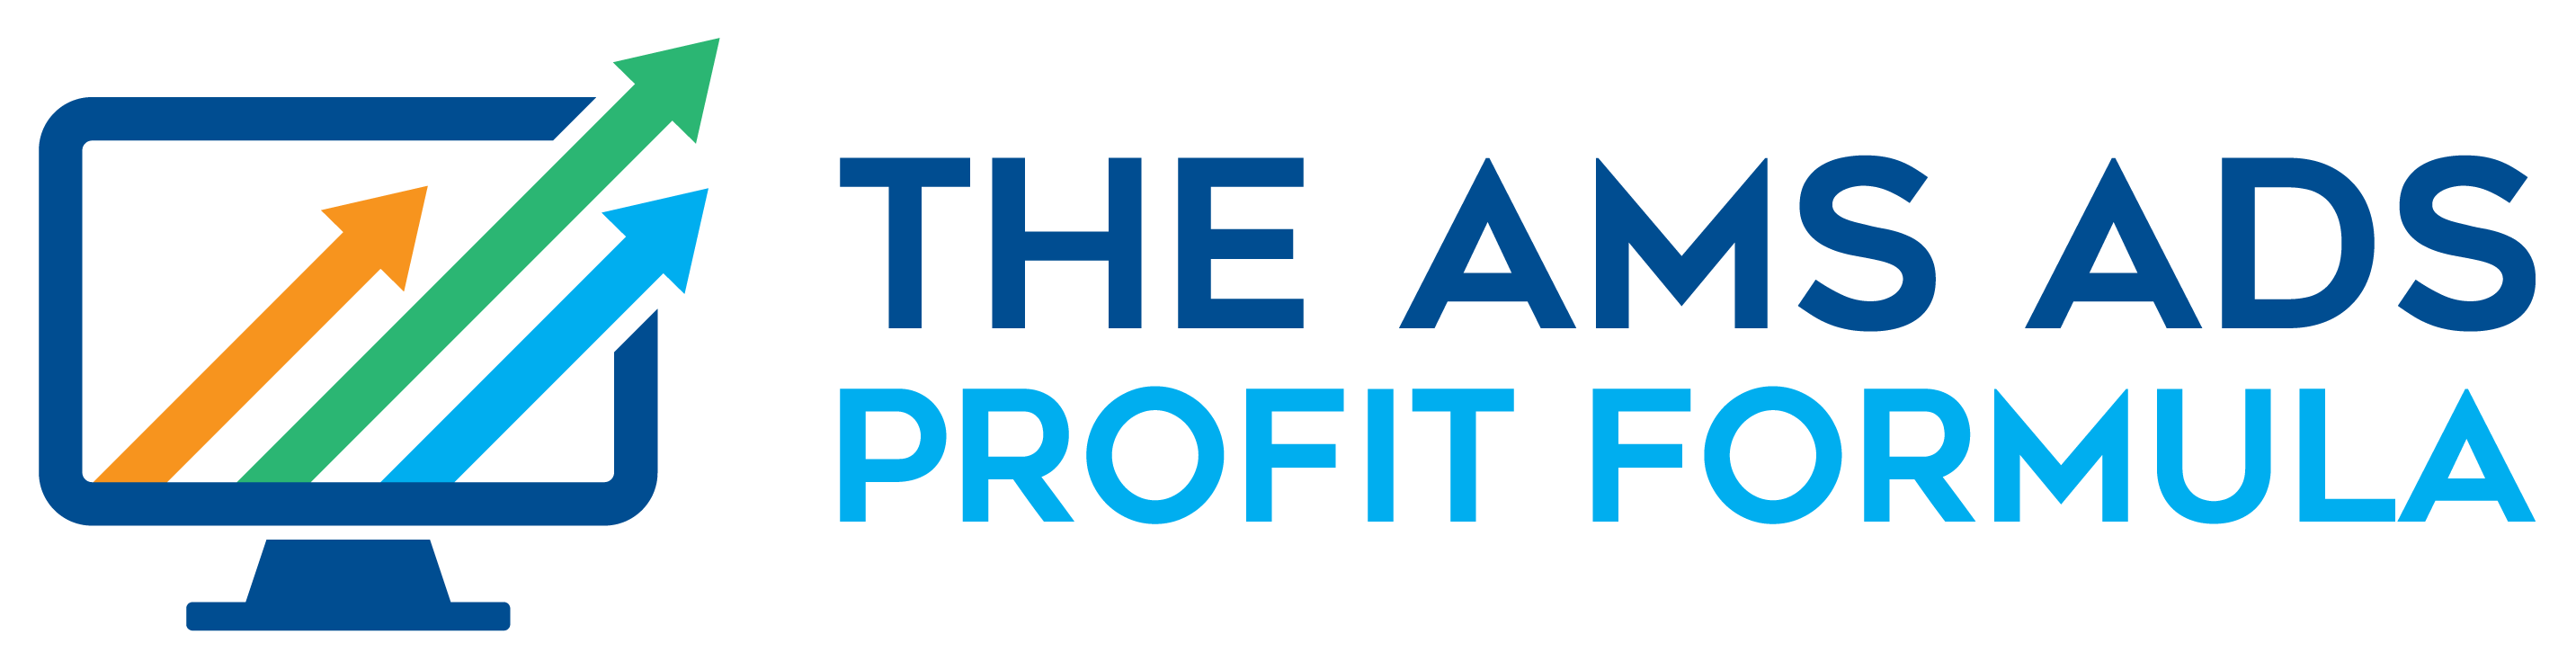 The AMS Ads Profit Formula